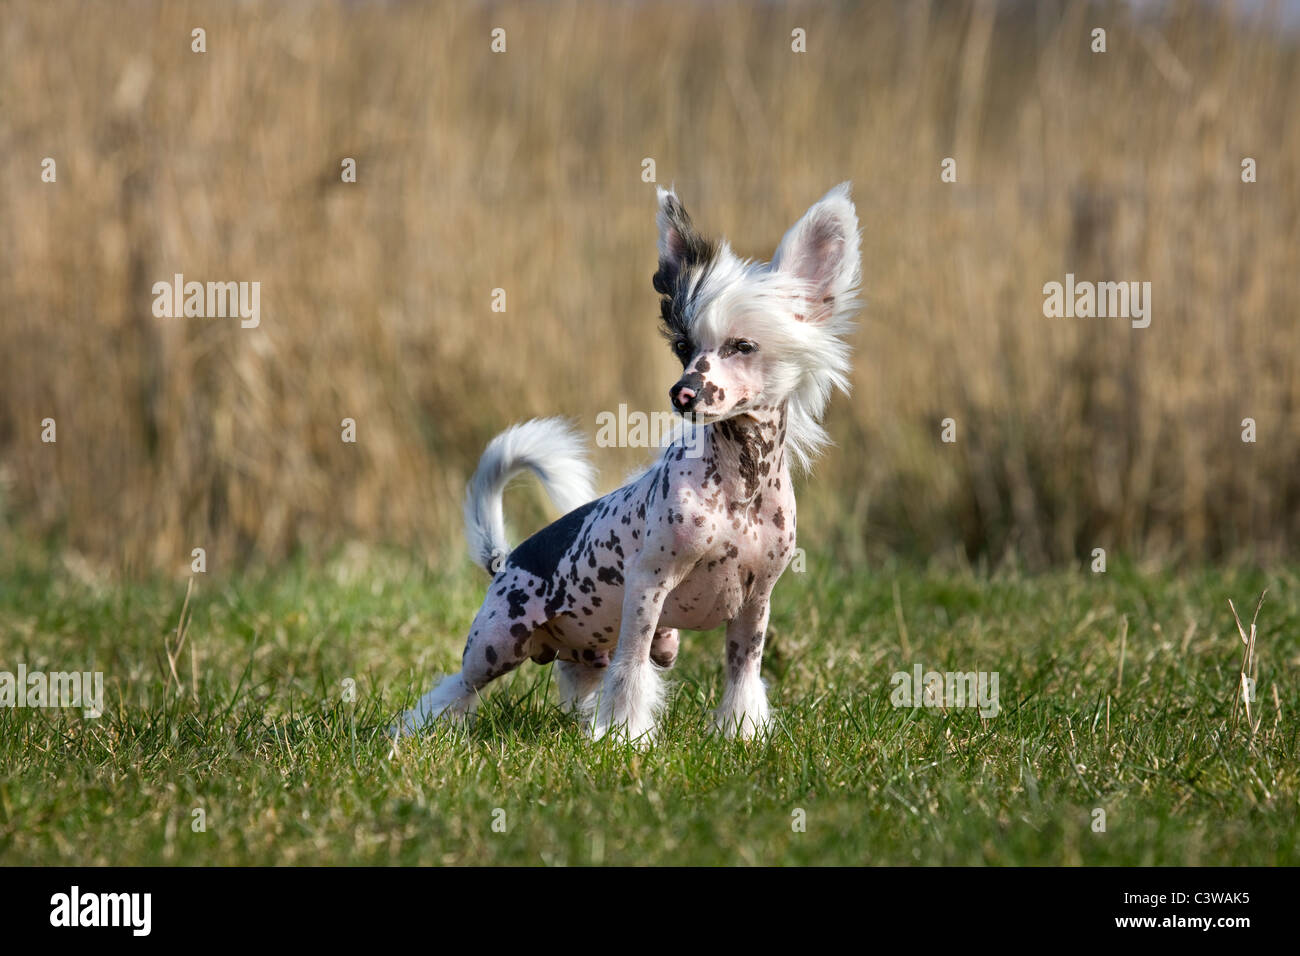 Chinese crested dog (Canis lupus familiaris) in field - Stock Image